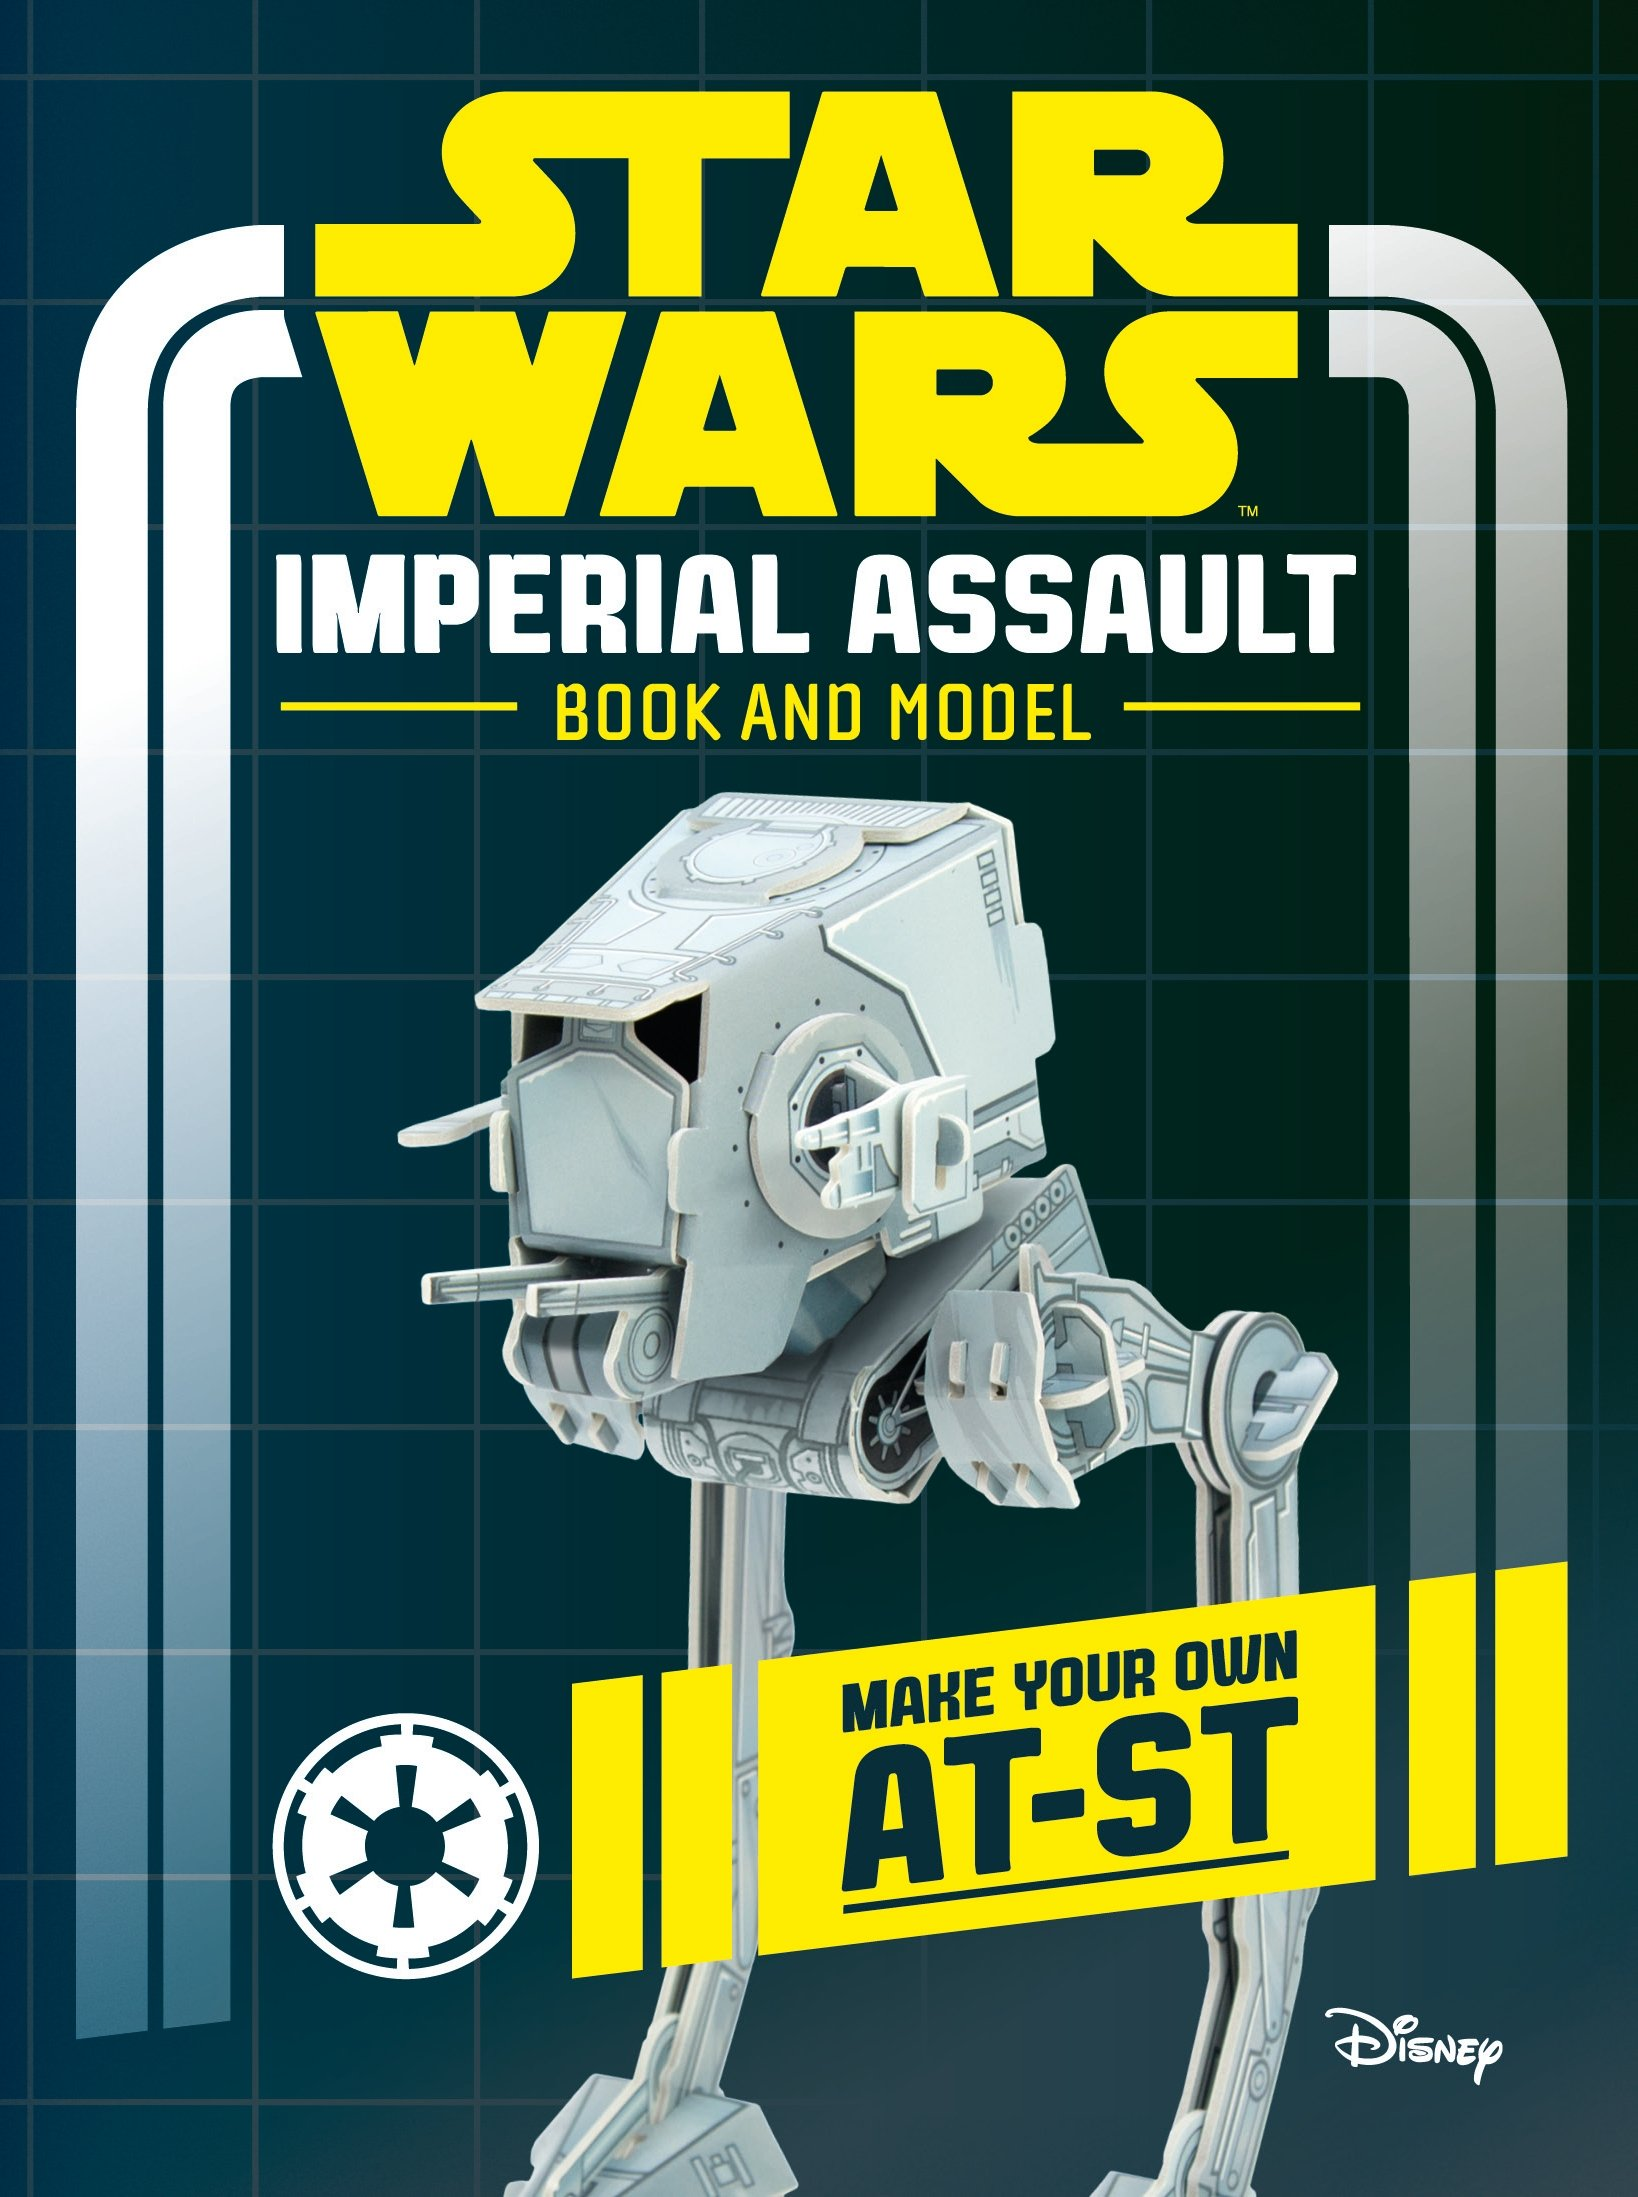 Star Wars Imperial Assault Book and Model: Make Your Own AT-ST